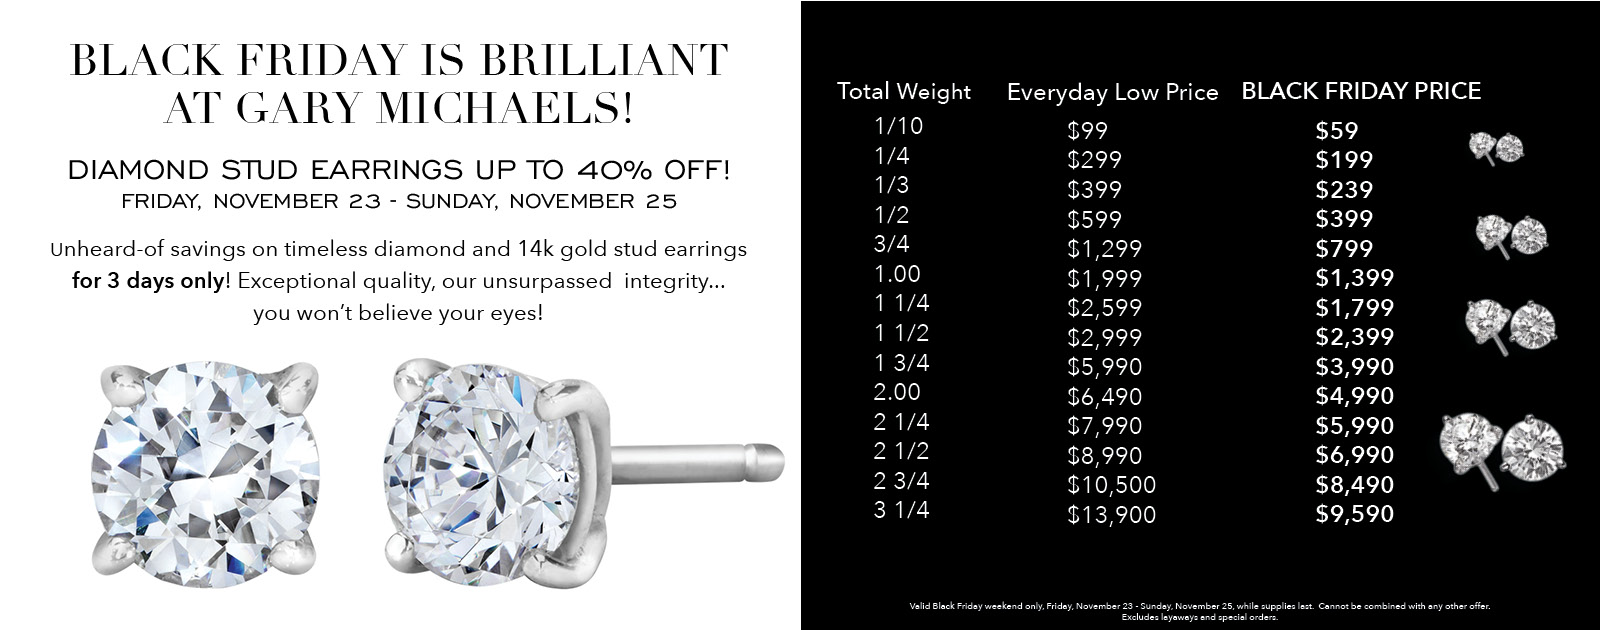 Black Friday Diamond Studs Sale Gary Michaels Fine Jewelry